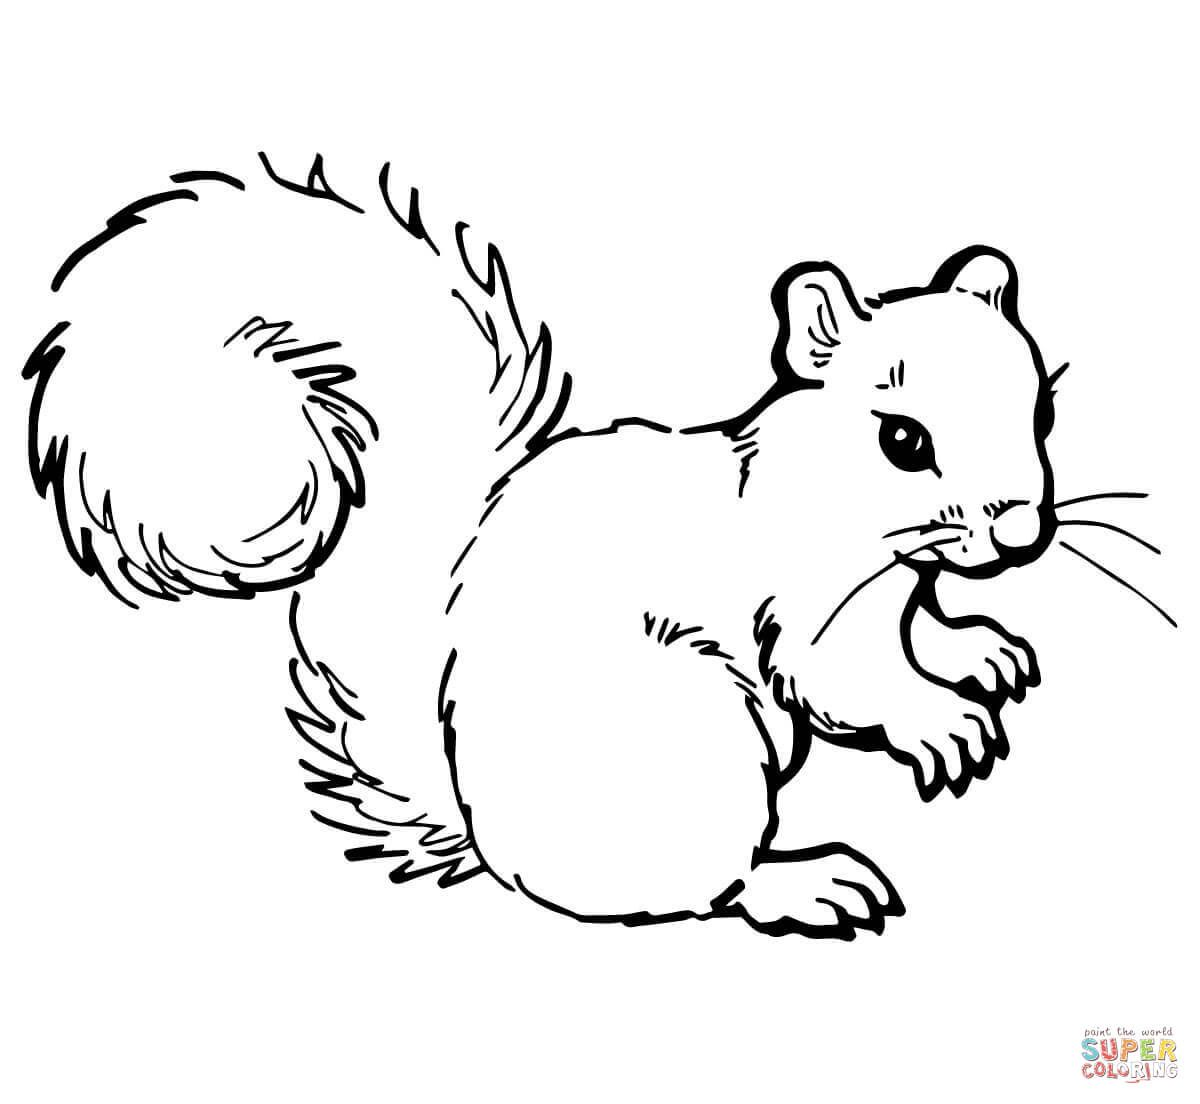 Grey Squirrel Coloring Page From Squirrels Category Select From